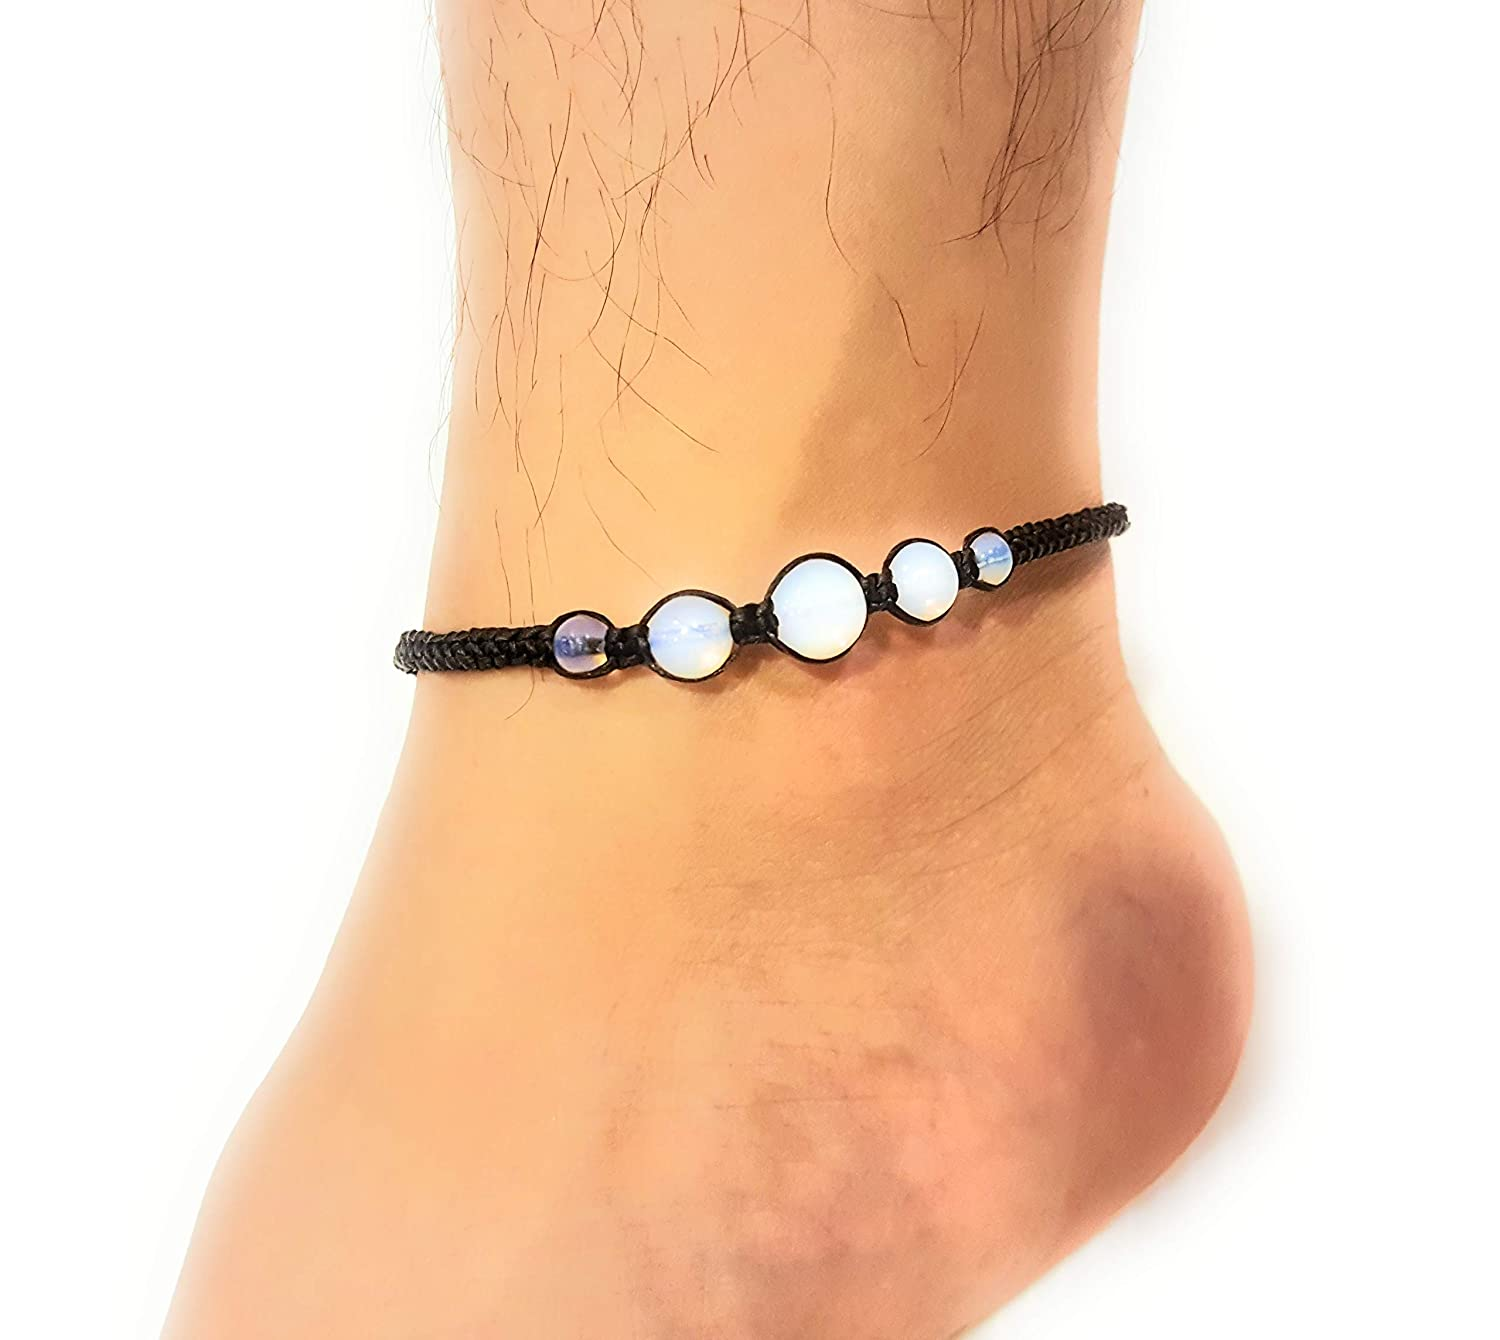 Infinity Opal Moonstone Anklet Bracelet Macrame Braided Woven Wax Cord Adjustable Anklet for Men teengirls NYAKOP1 Women